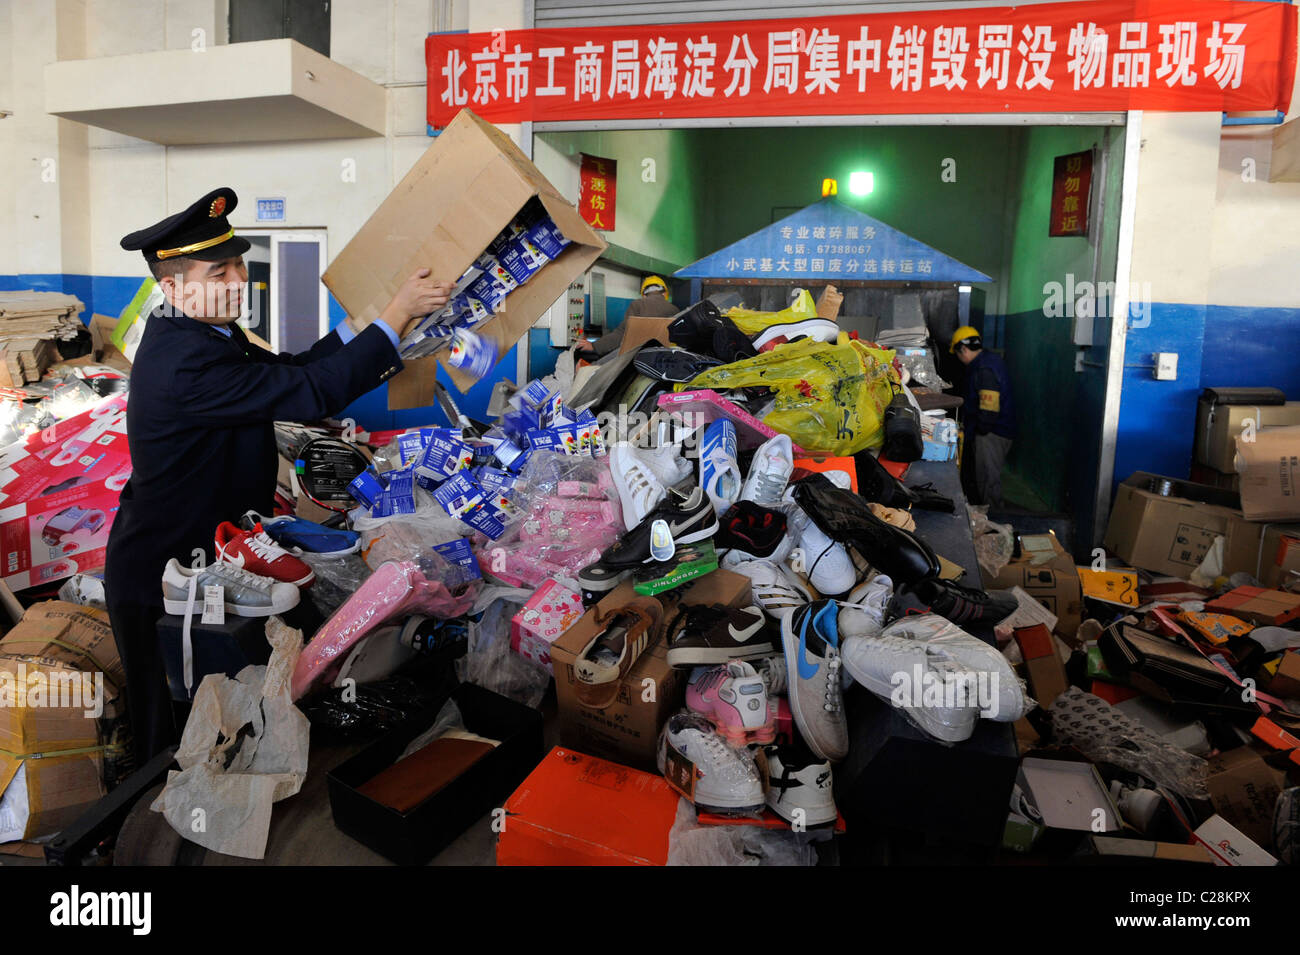 FAKE GOODS SEIZED IN CRACKDOWN Thousands of fake phones and footwear pile  up at a warehouse e32cfb55abdd